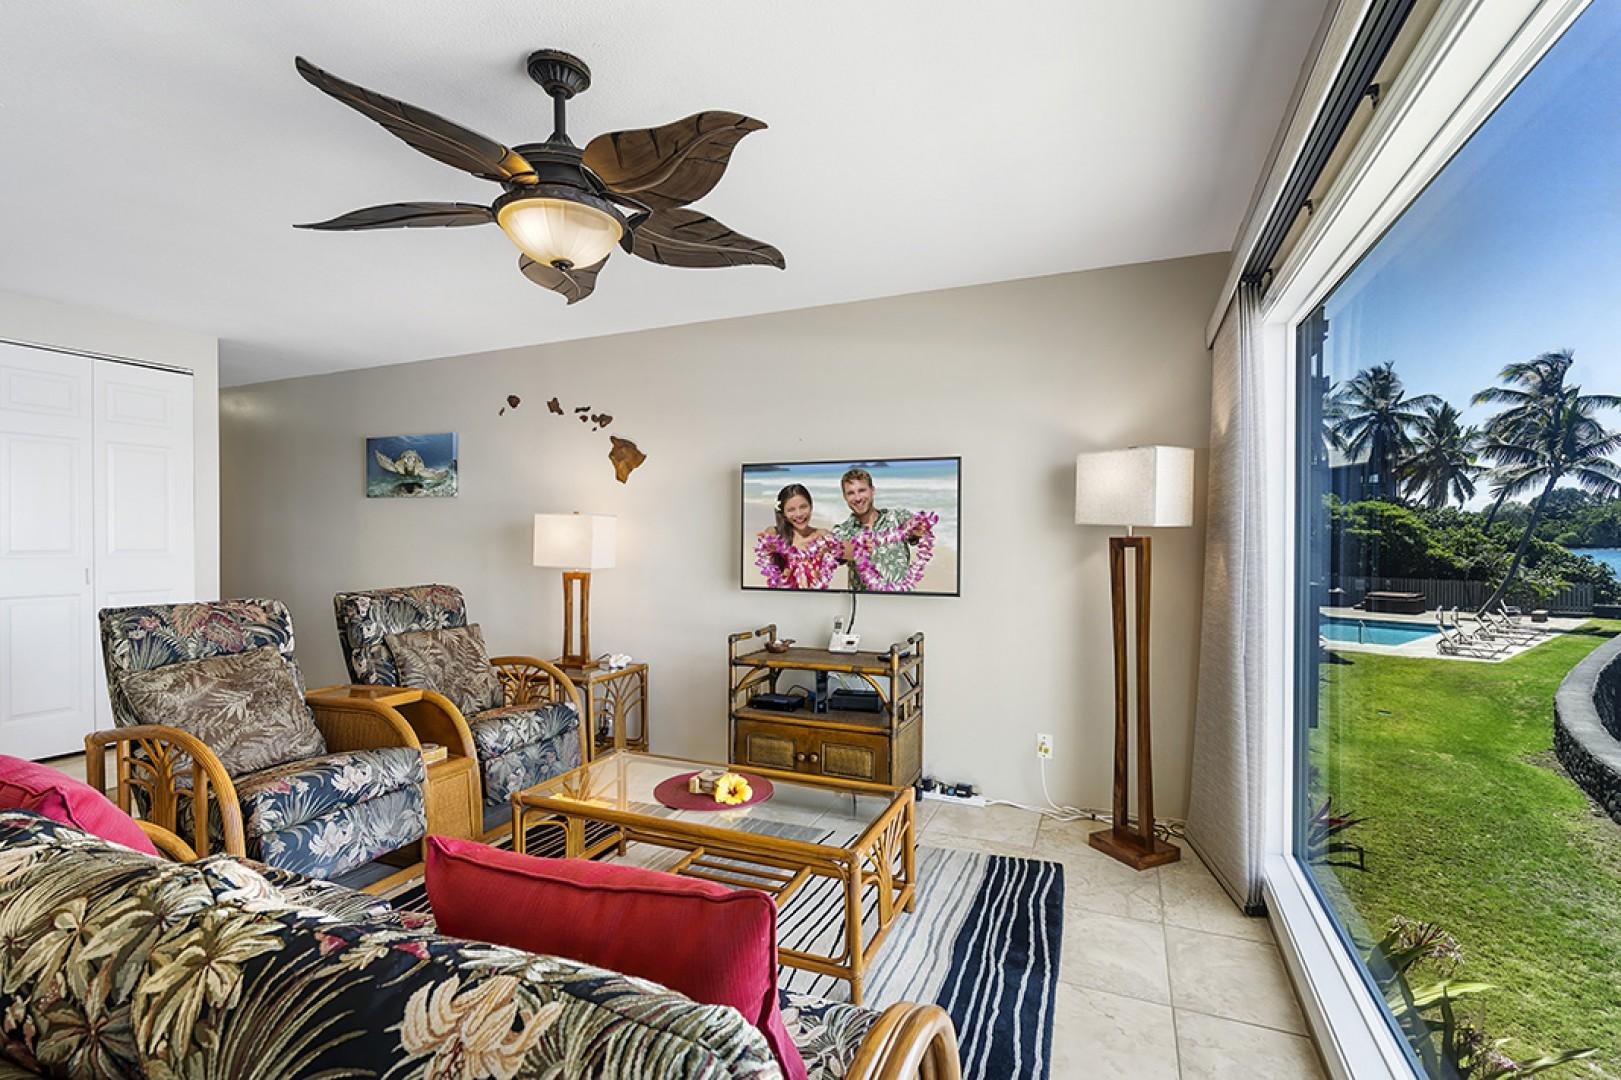 Watch the flat screen TV or watch the surfers in front of the condo!